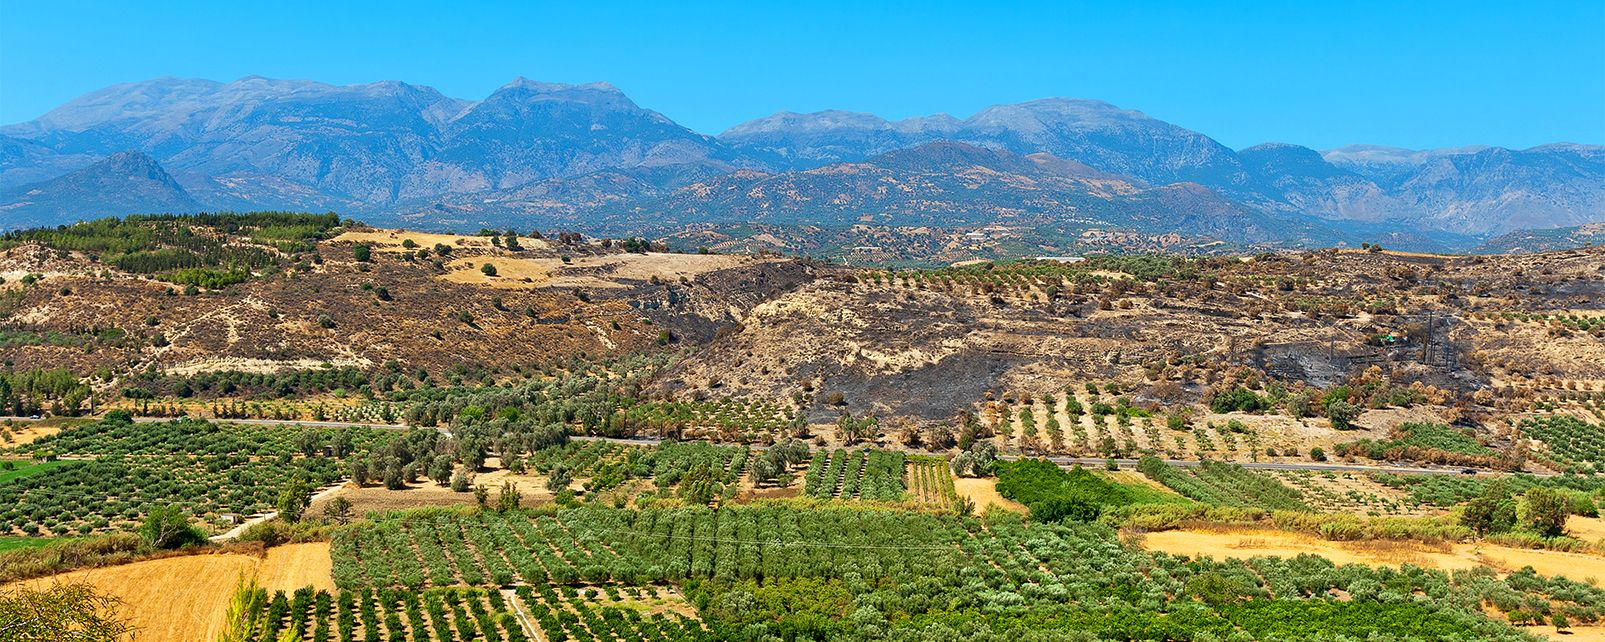 The limestone cliffs, The chalky mountains, Landscapes, Crete